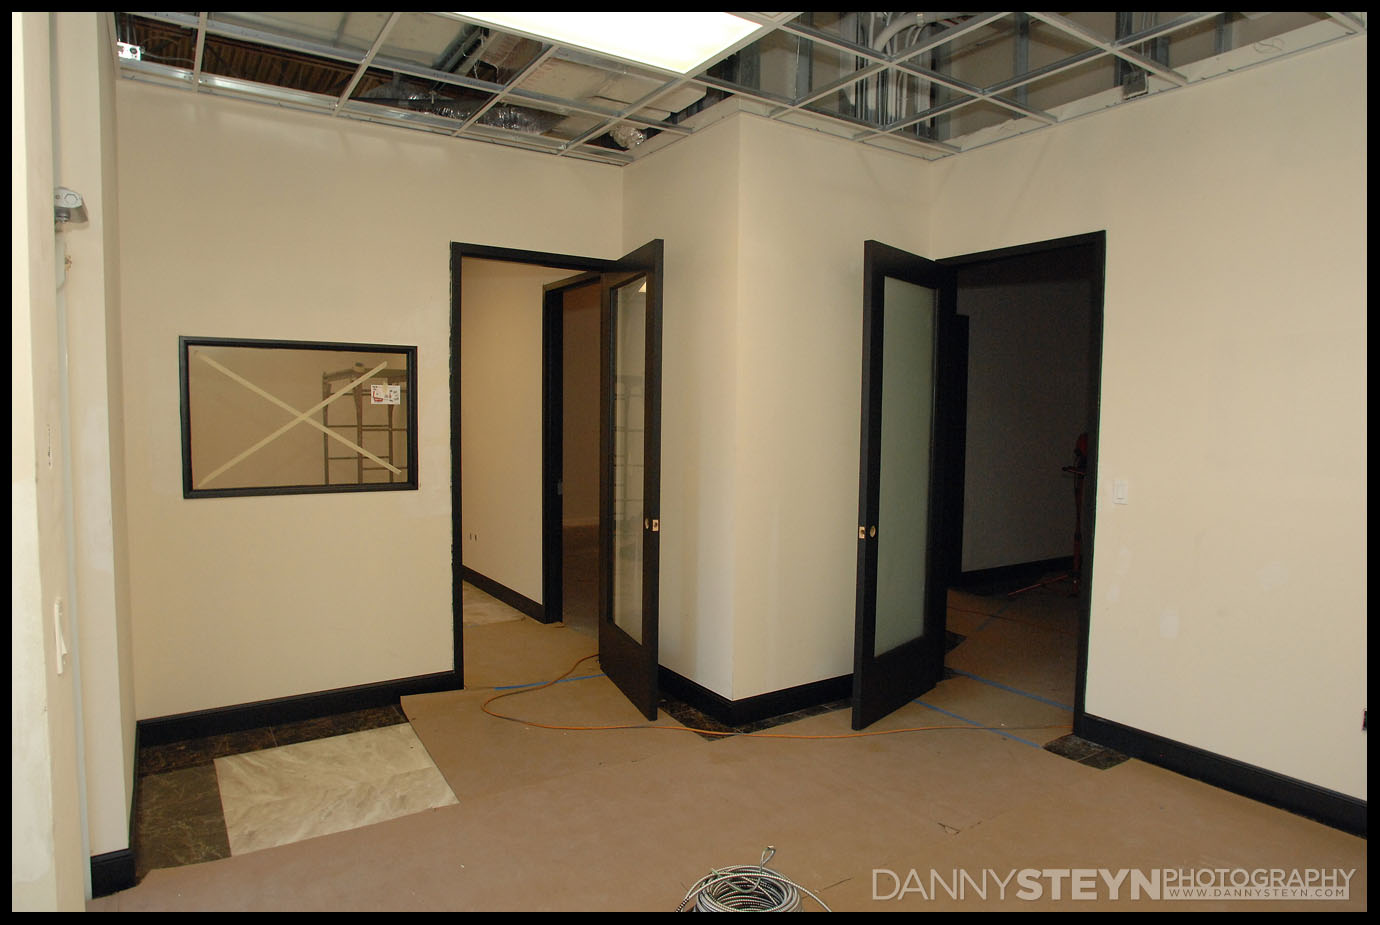 Photo Studio front Lobby showing tiles, black 8ft doors with frosted glass, and black baseboards. Lighting and drop ceiling being hung.